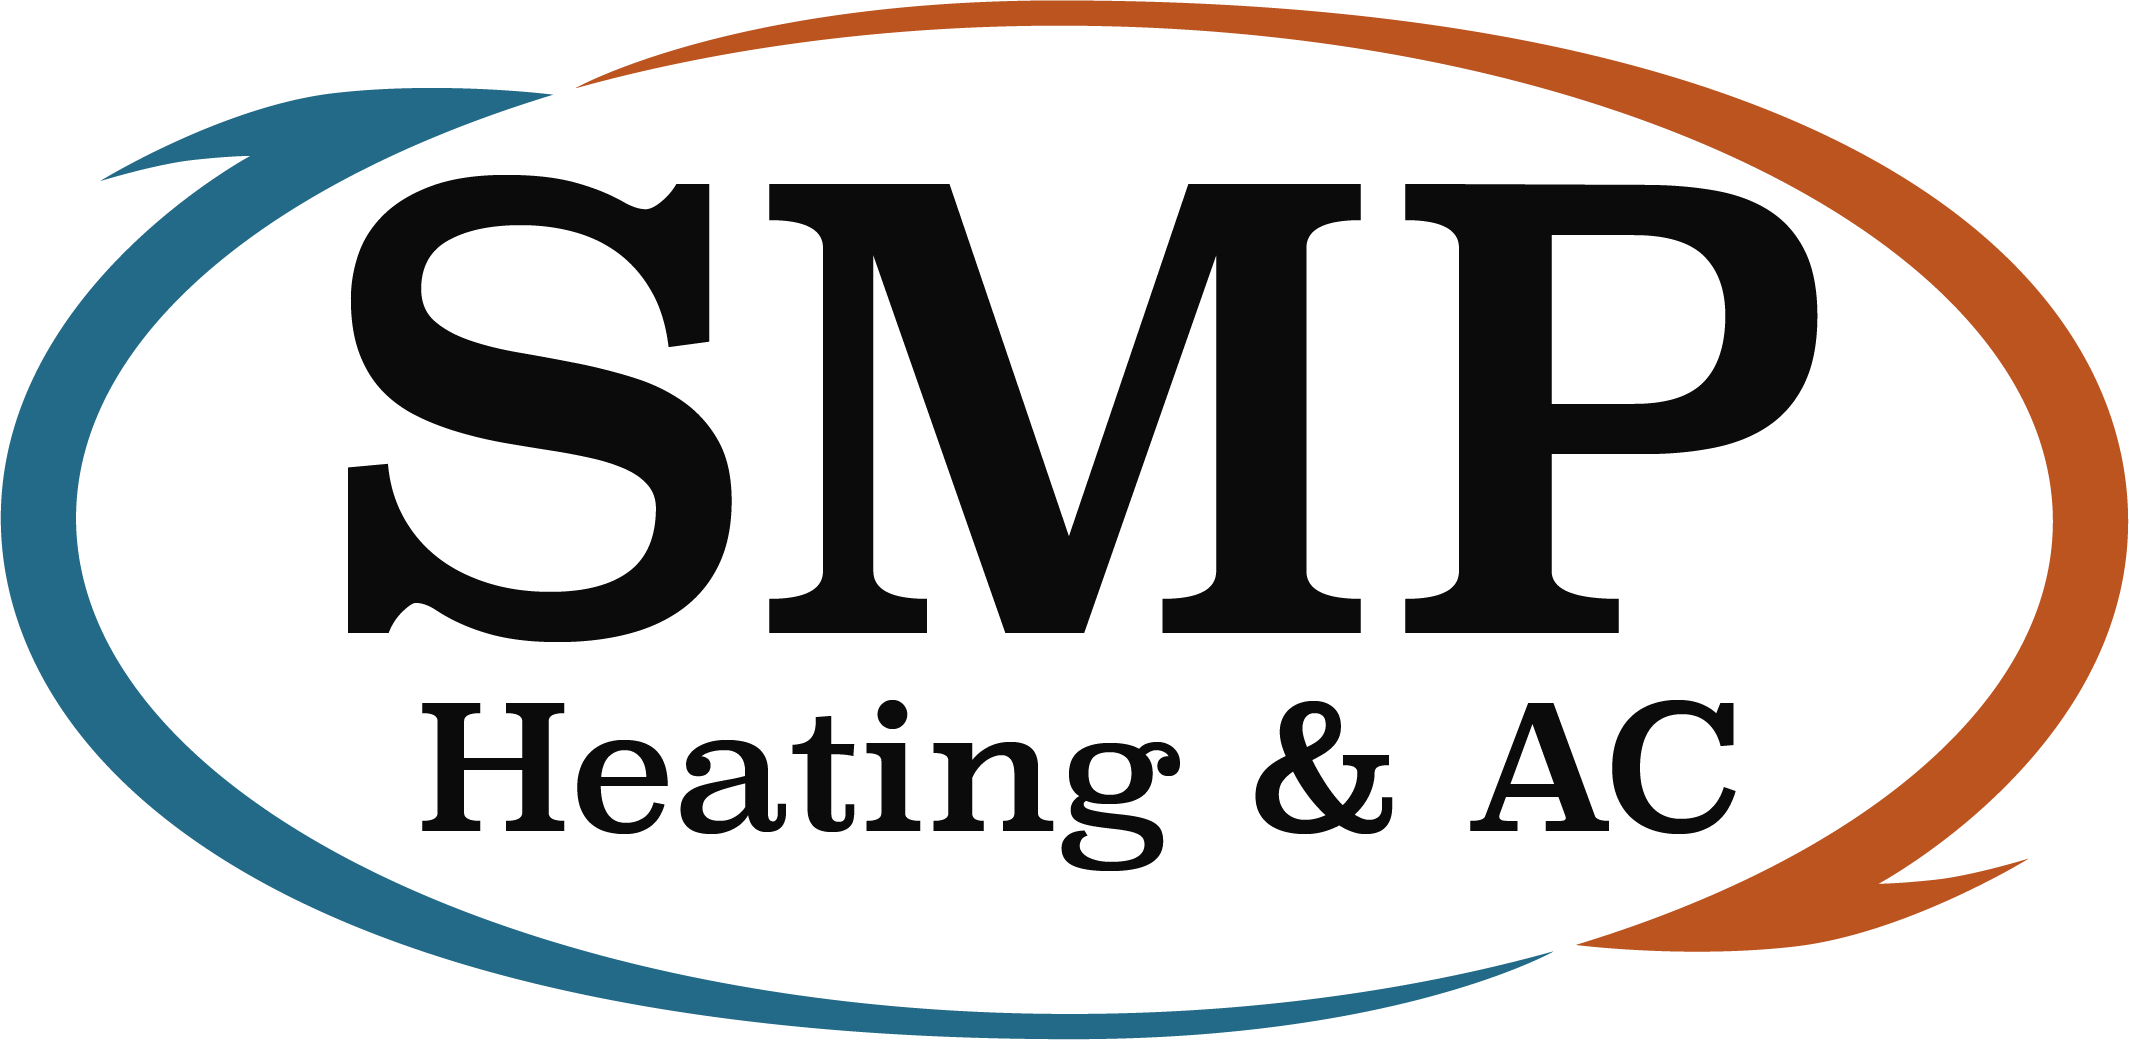 SMP Heating & AC! Your go to for Furnace and Water Heater repair in Zimmerman MN!